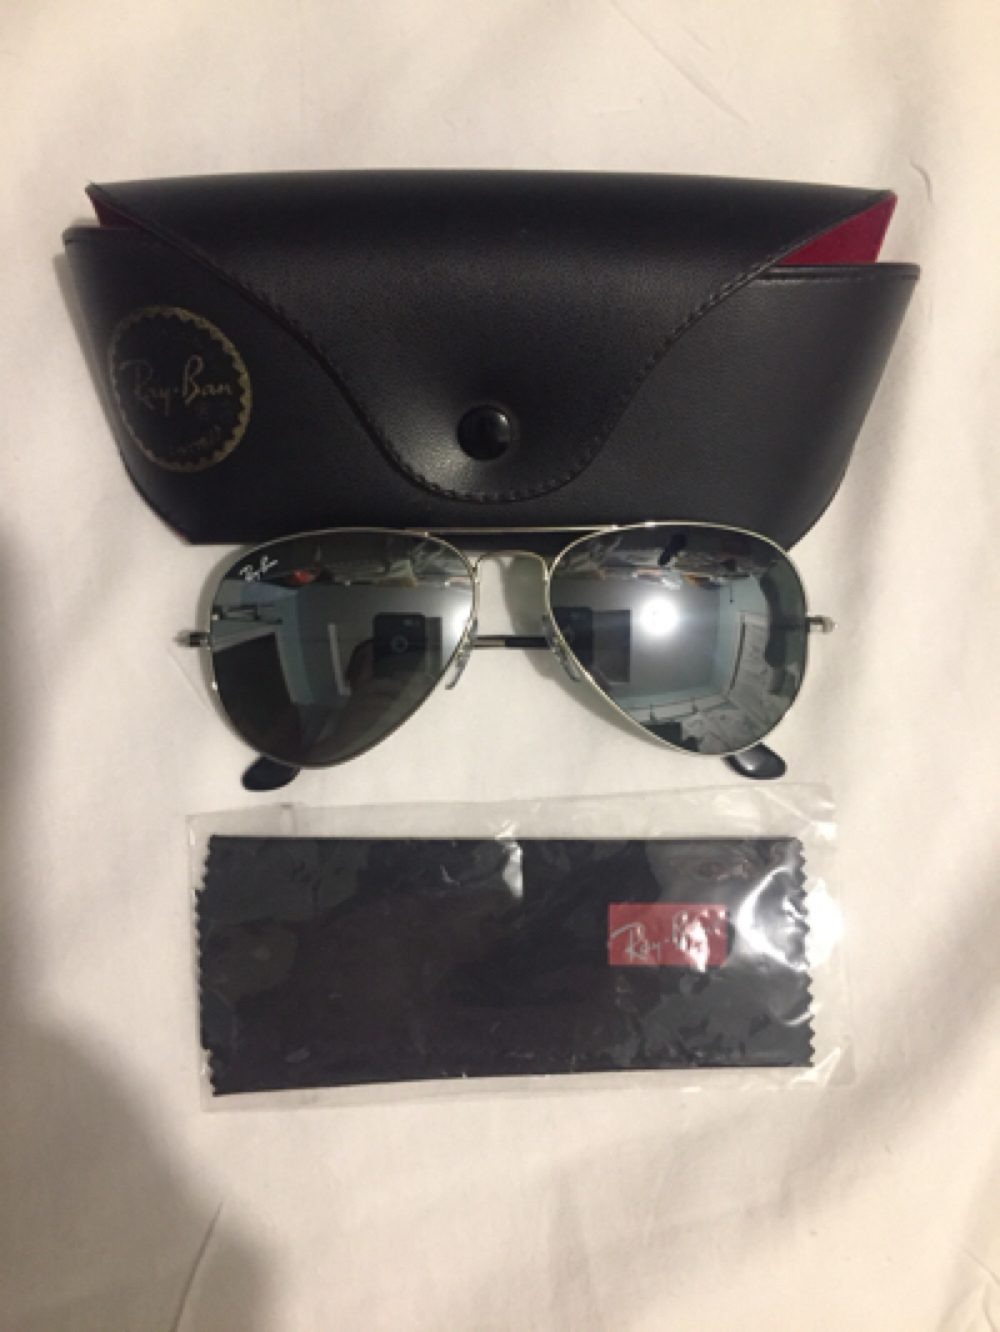 6bfaf98f4e826 Ray Ban Aviator RB 3025 W3277 Silver Frame and 50 similar items